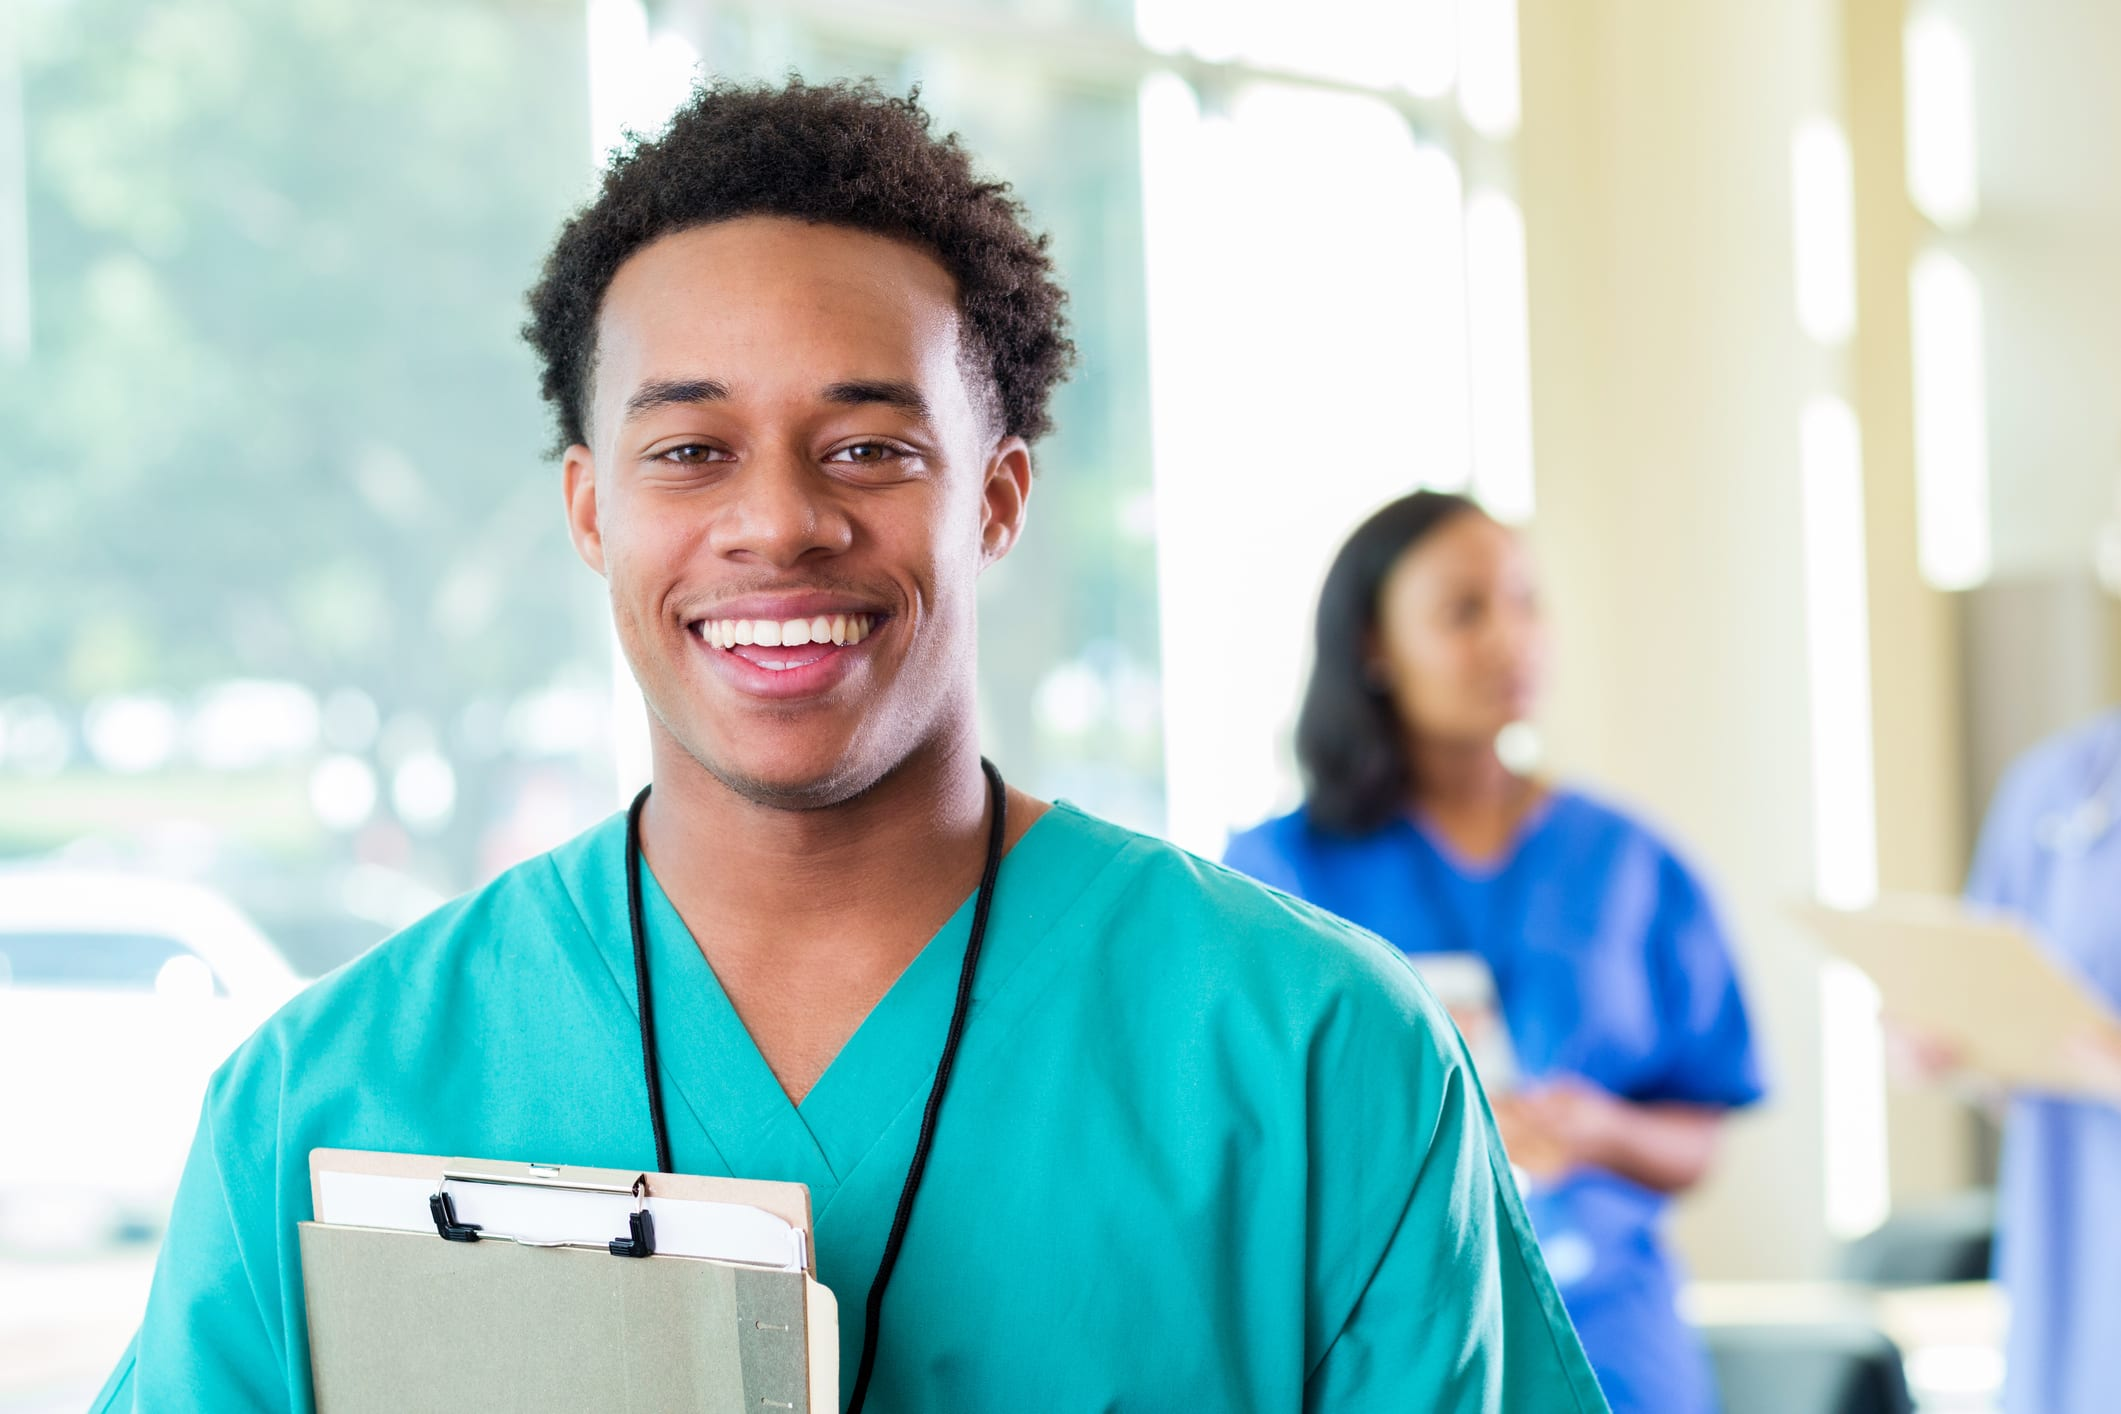 What Is an RN Degree?